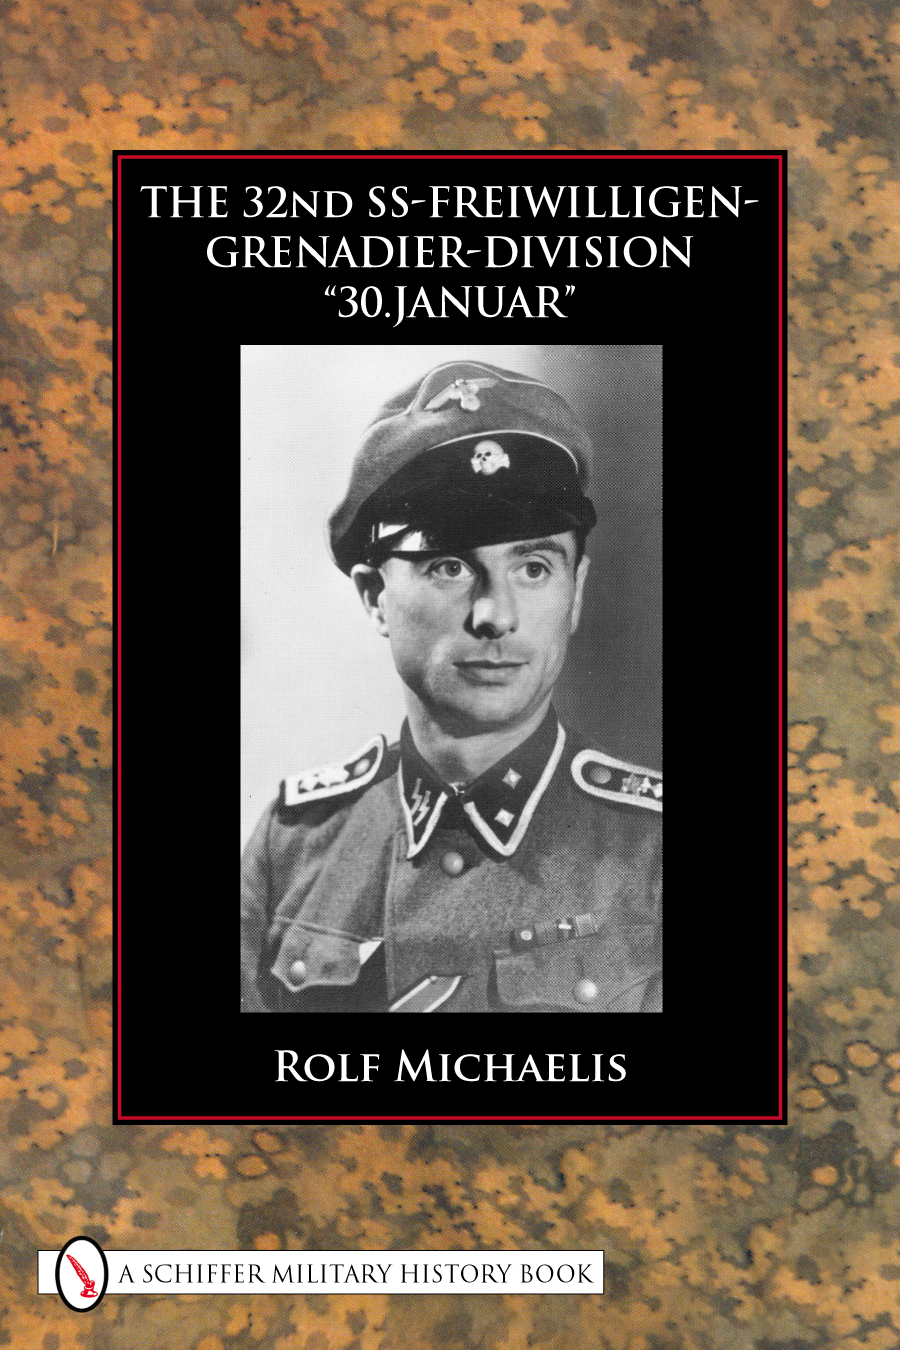 The 32nd SS-Freiwilligen-Grenadier-Division